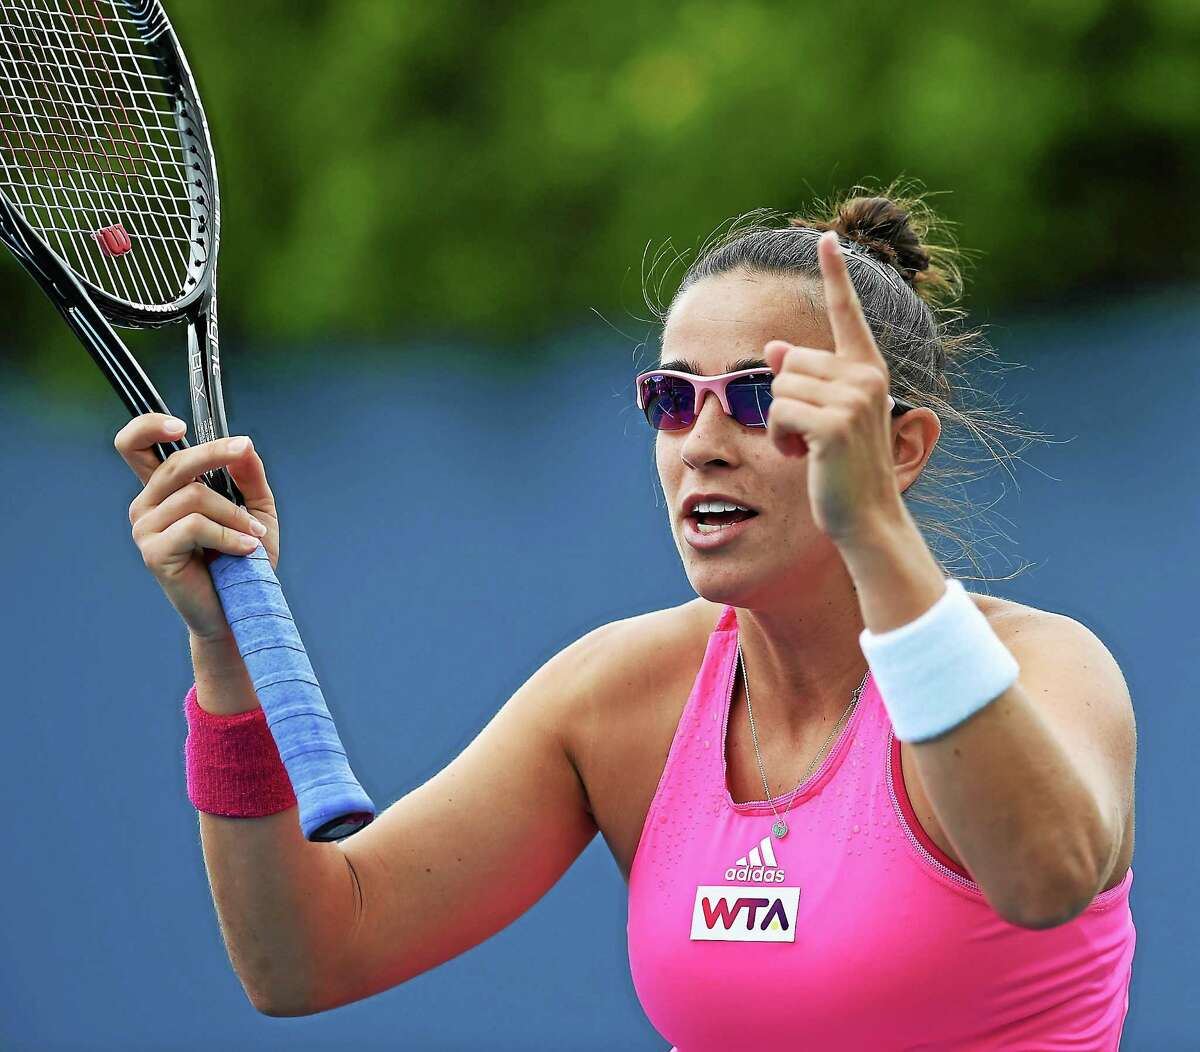 (Mara Lavitt ó New Haven Register) August 15, 2014 New Haven Today was the first day of the CT Open at the Connecticut Tennis Center. Paula Ormaechea. mlavitt@newhavenregister.com